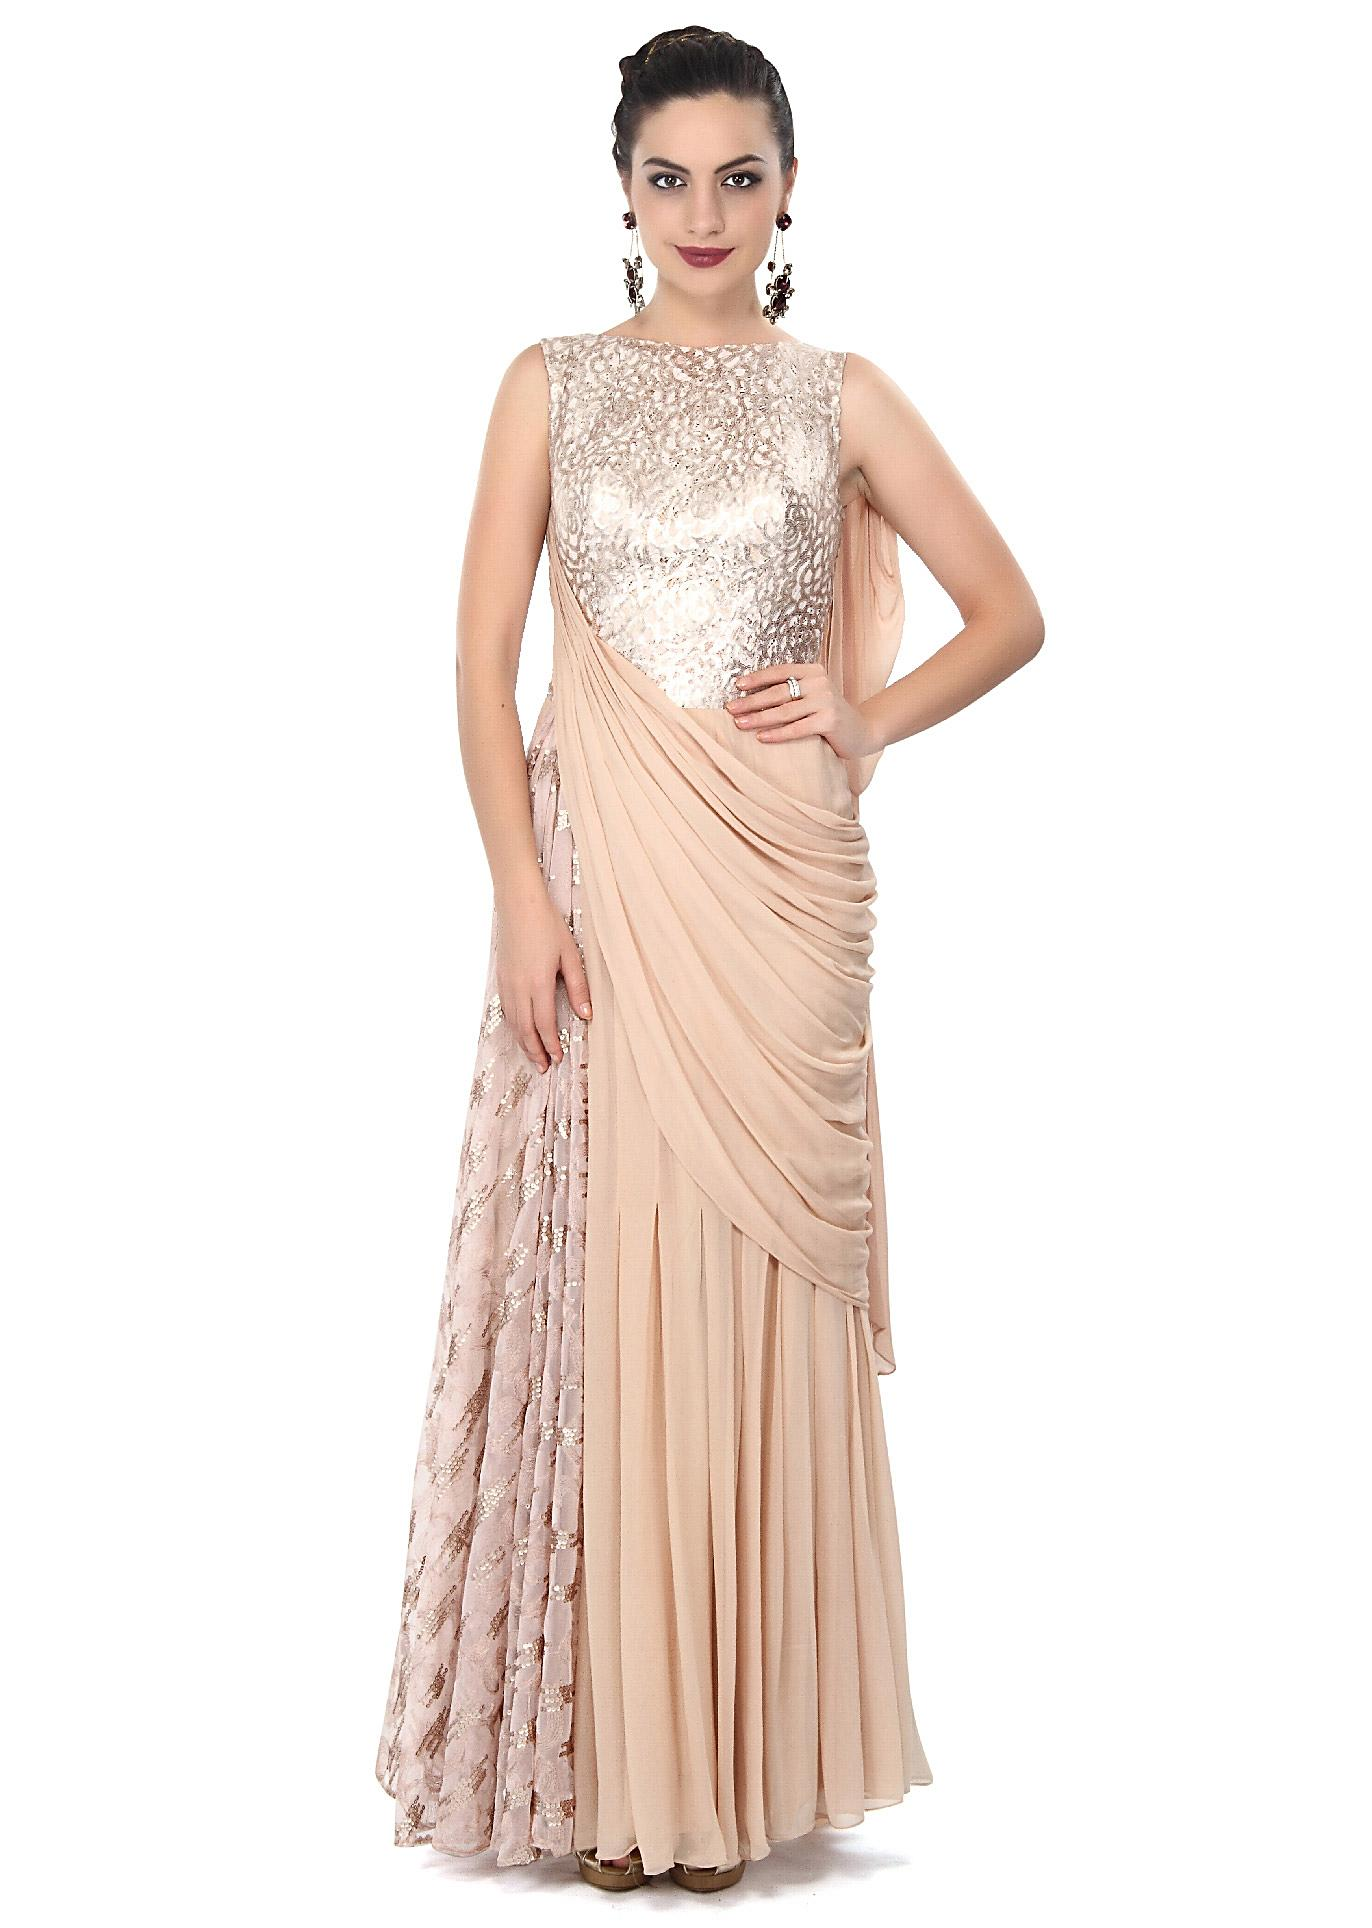 Beige Saree Gown Enhanced In Sequin Embellished Bodice